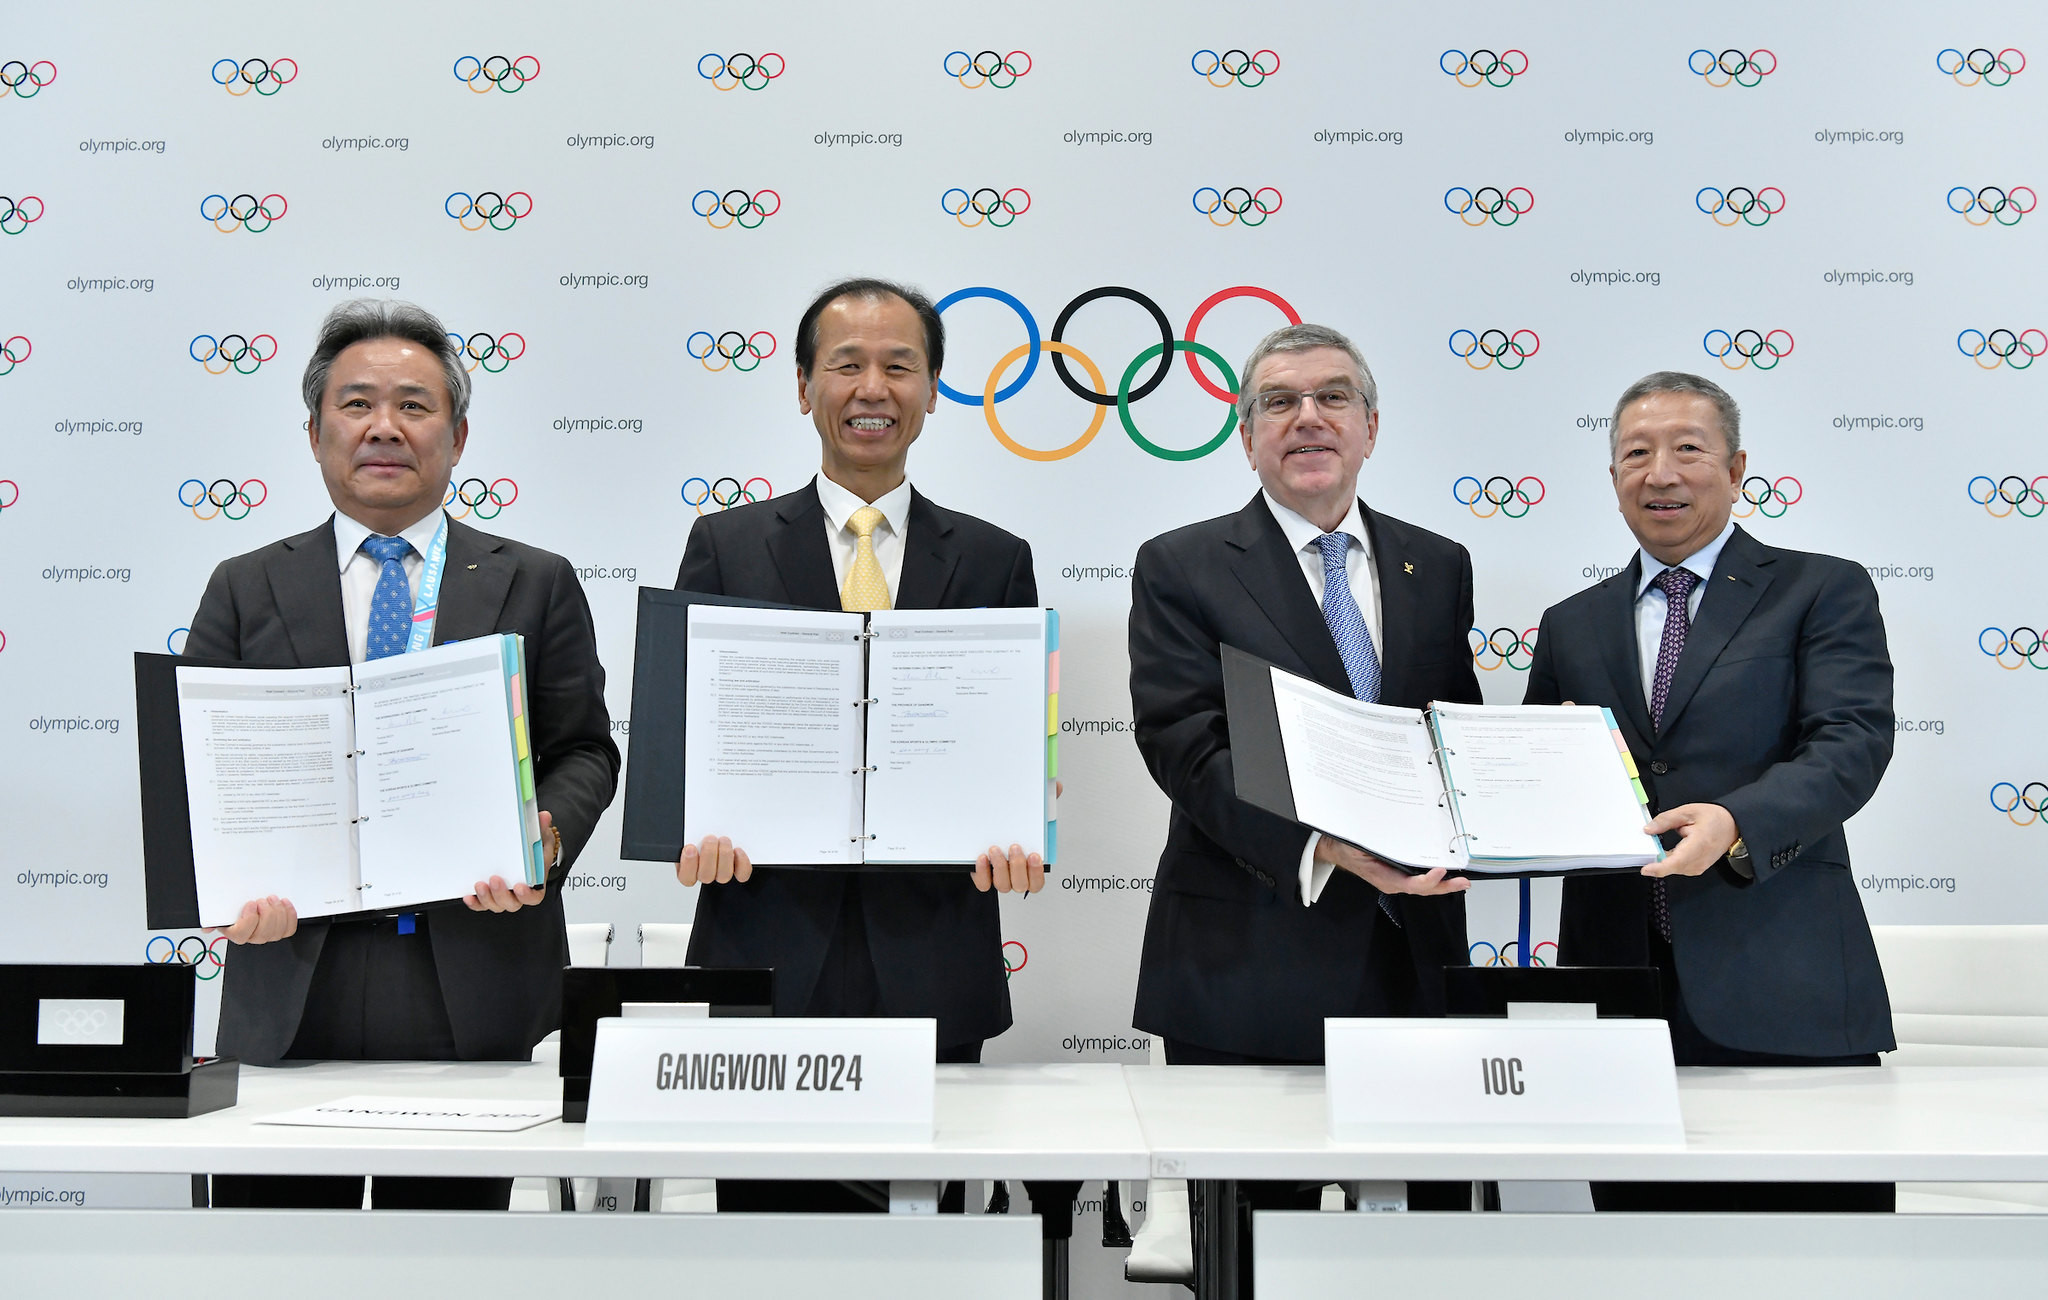 135th IOC Session and opening day of Lausanne 2020